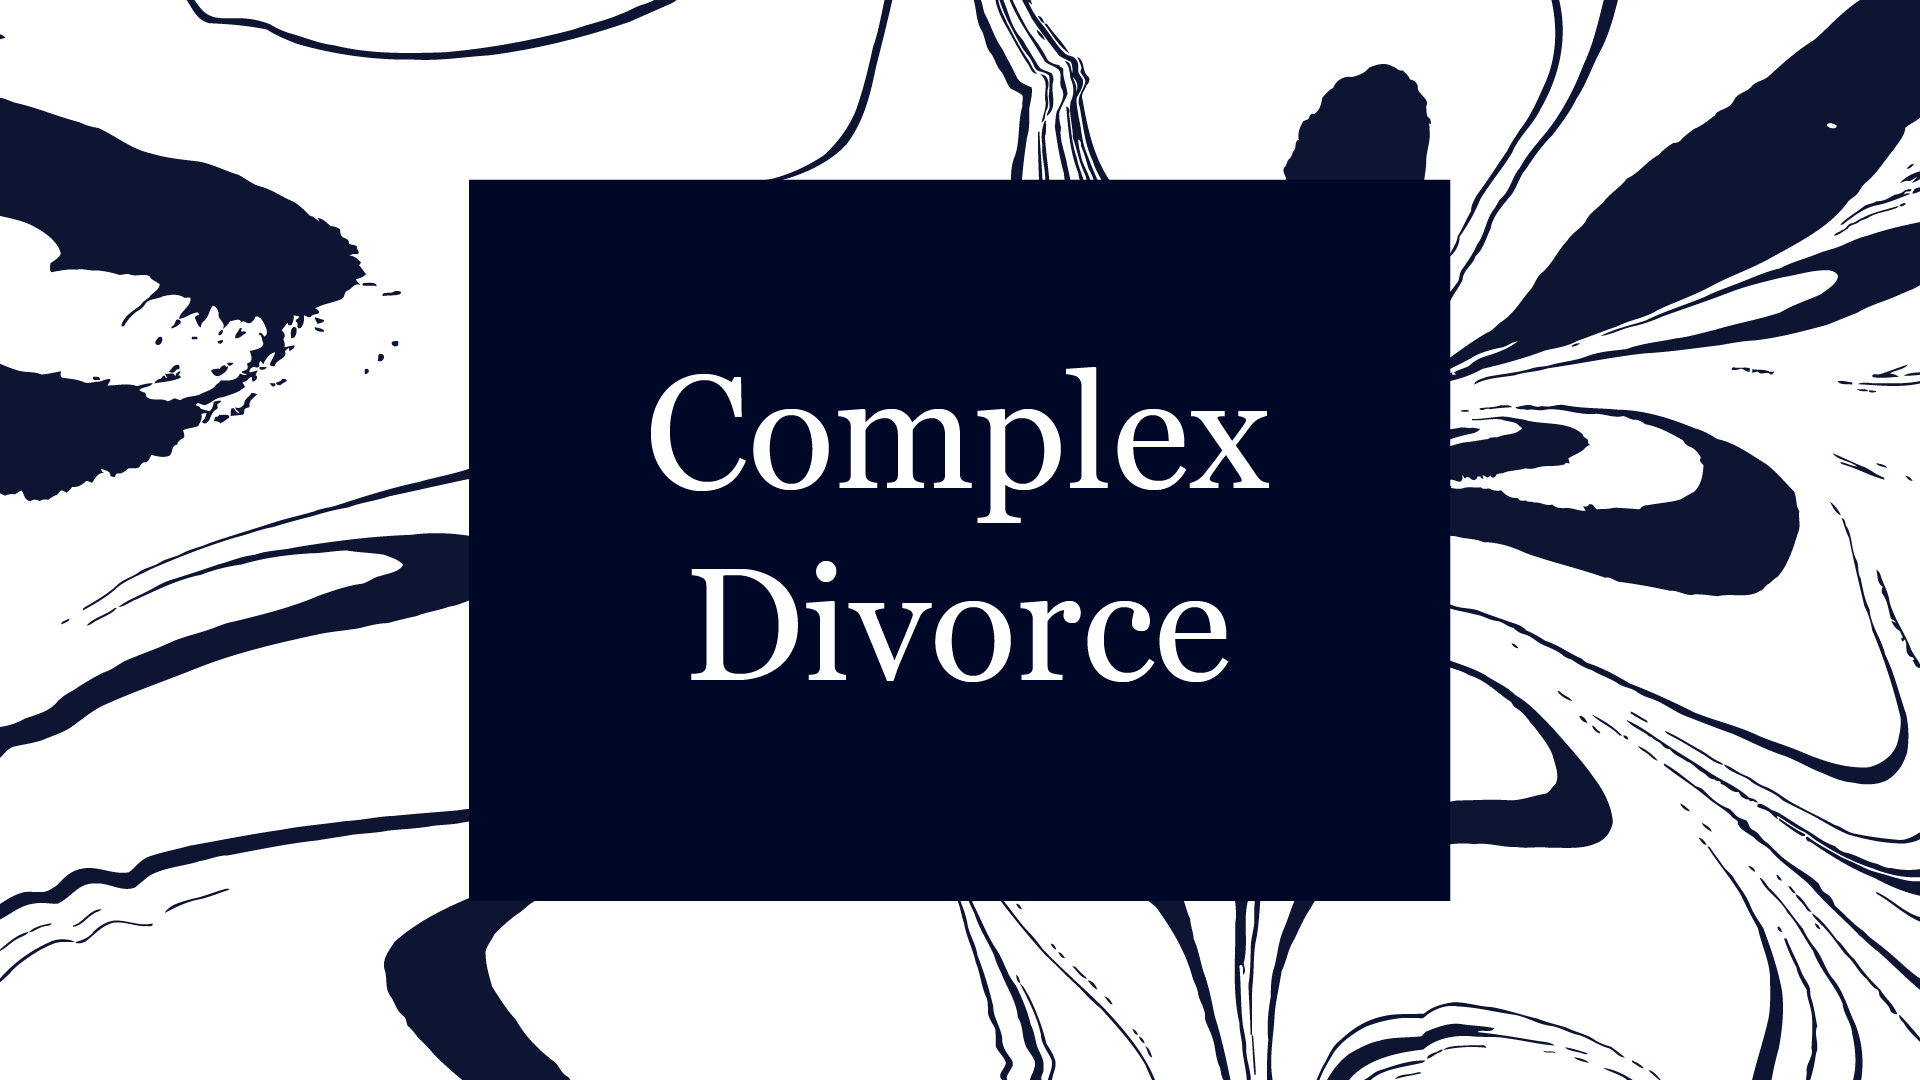 Complex Divorce Tile